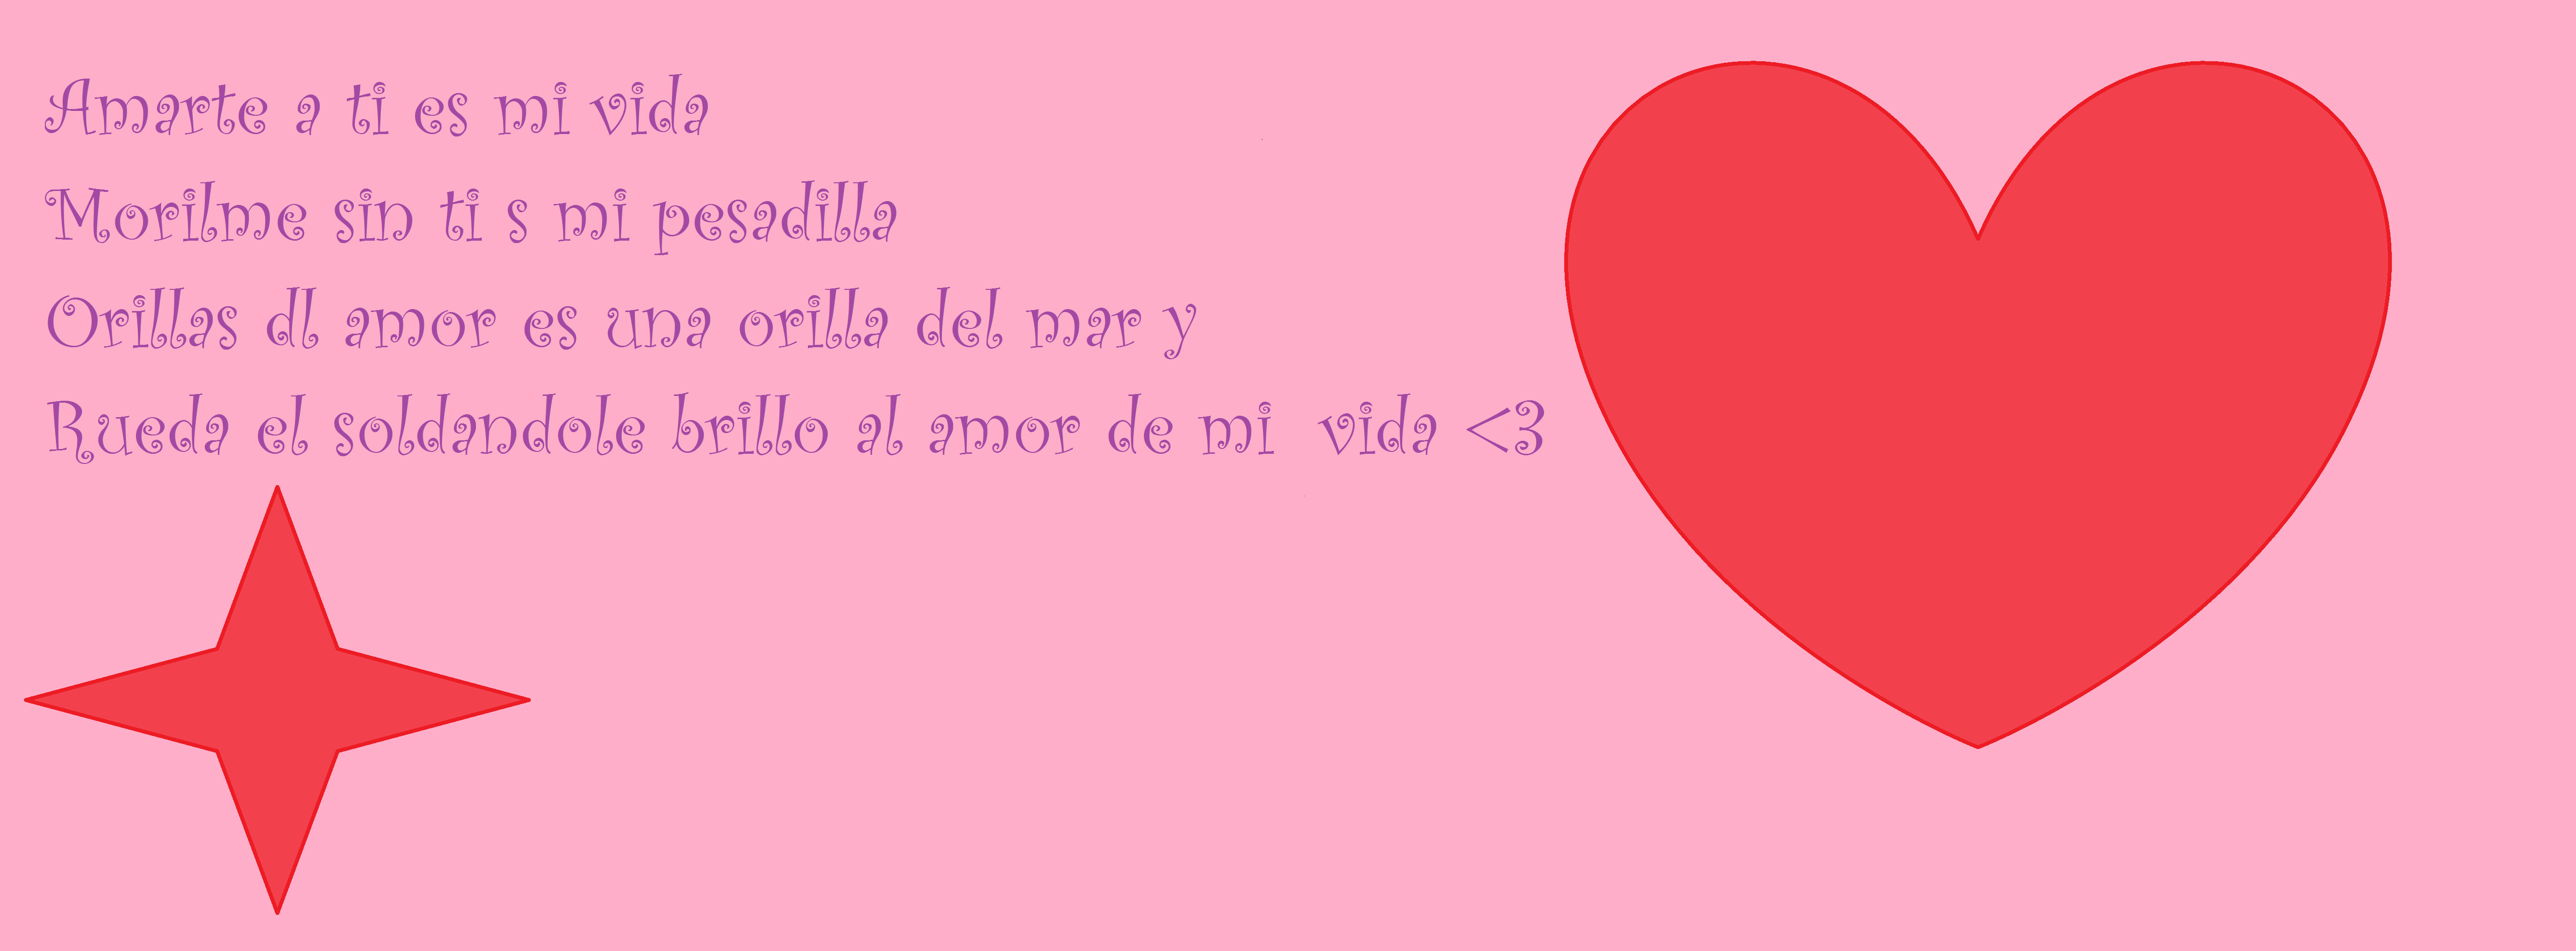 Spanish Love Quotes Love Quotes For Him for Her Tagalog Images In 5344x1972